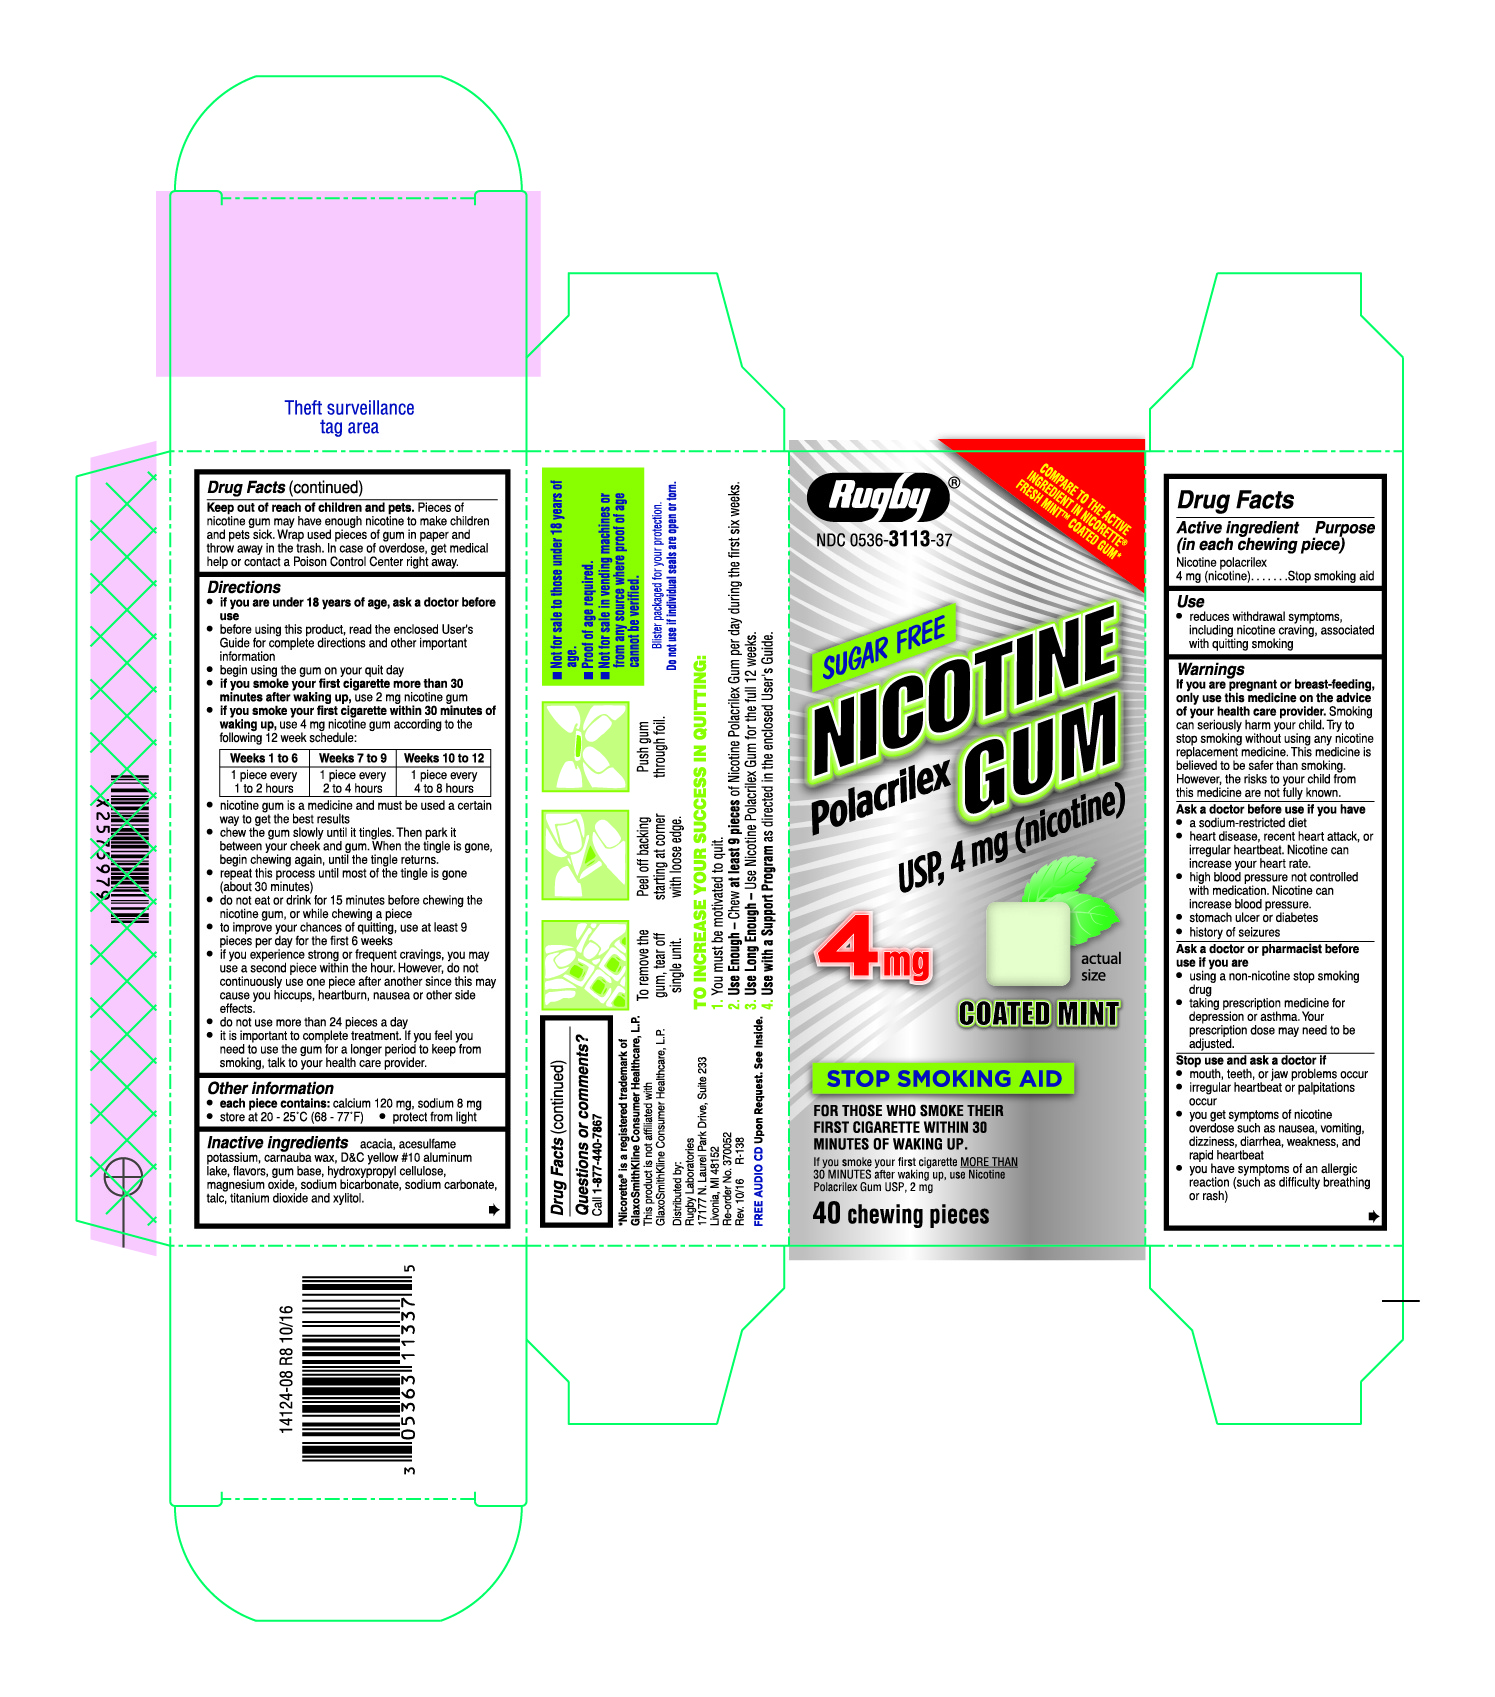 4 mg 40 count coated mint